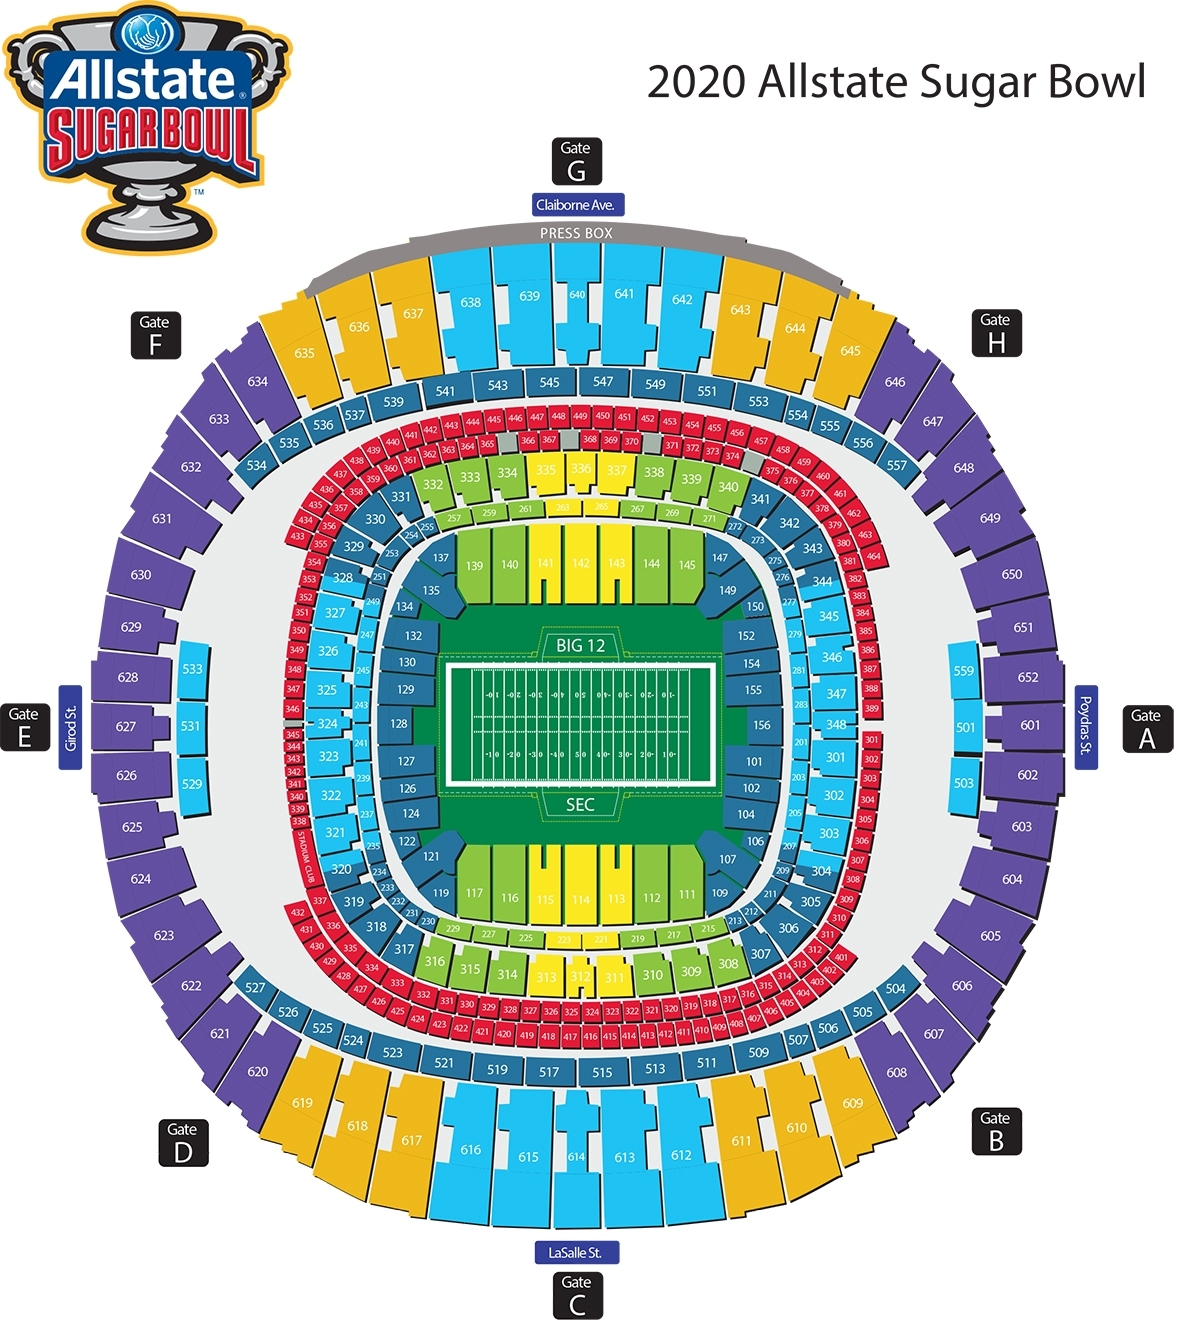 Seating Diagram - Official Site Of The Allstate Sugar Bowl with regard to Super Bowl Seating Chart 2019